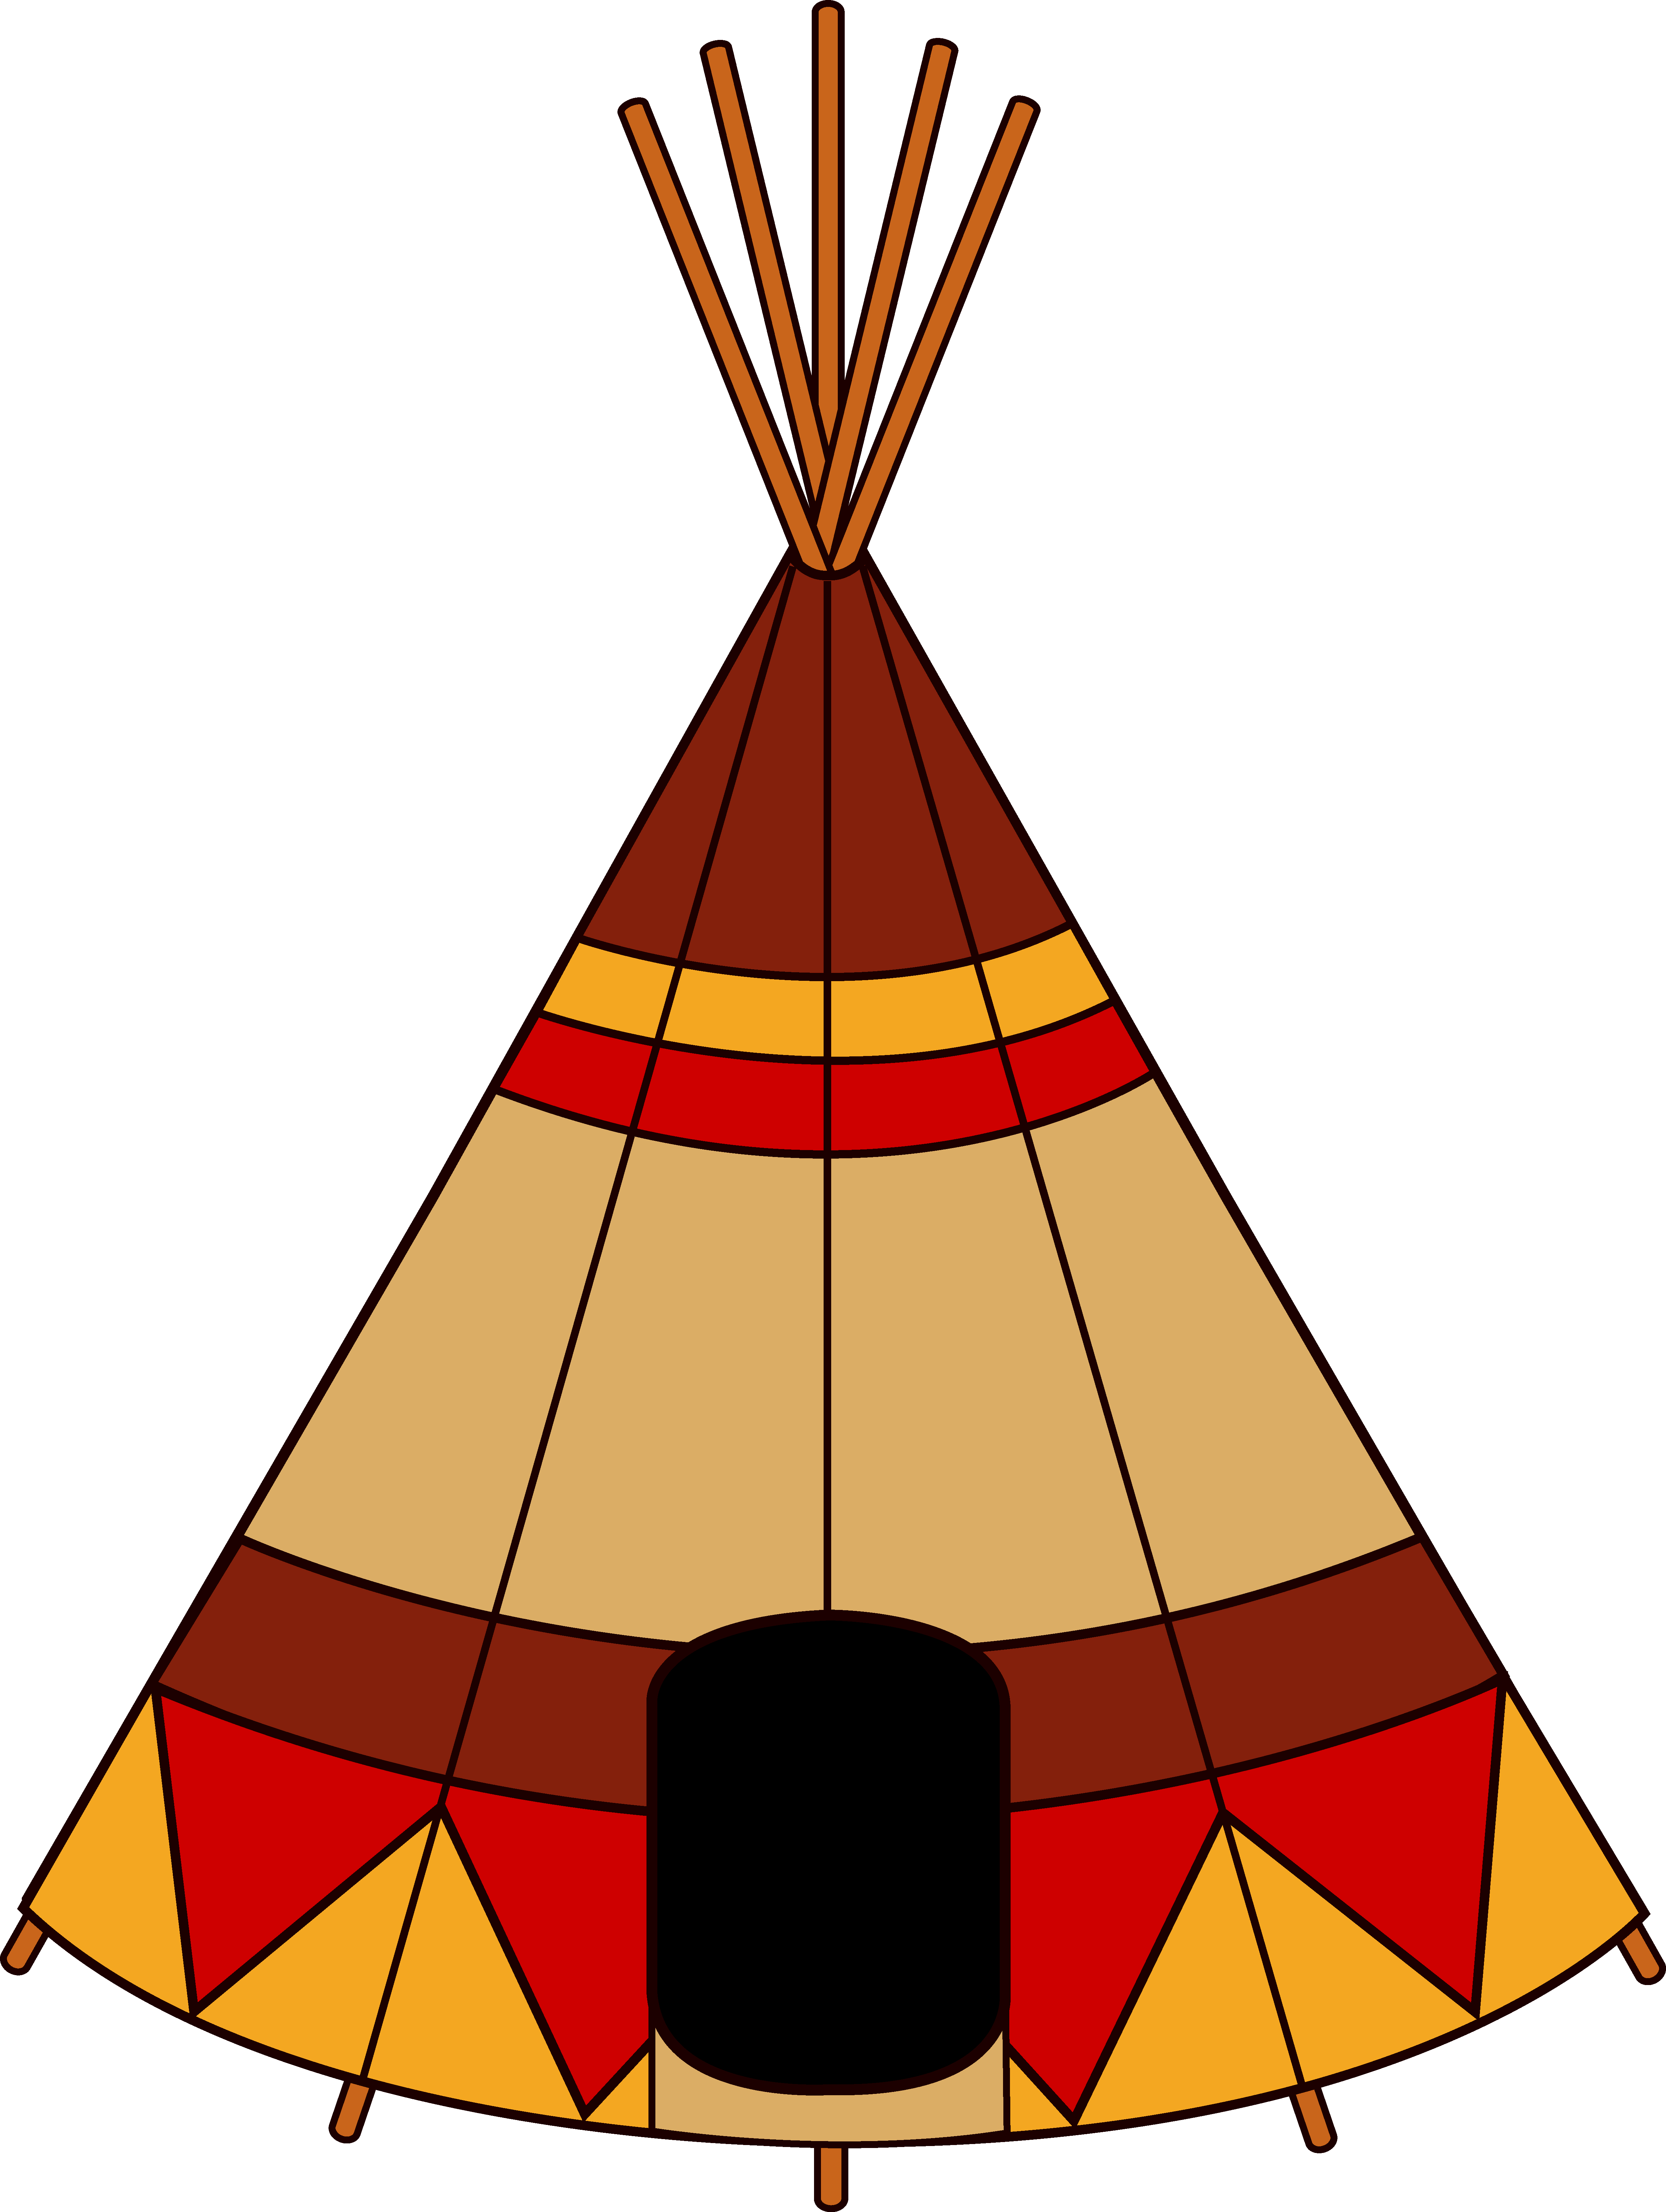 Native american teepee free. Wolves clipart orange